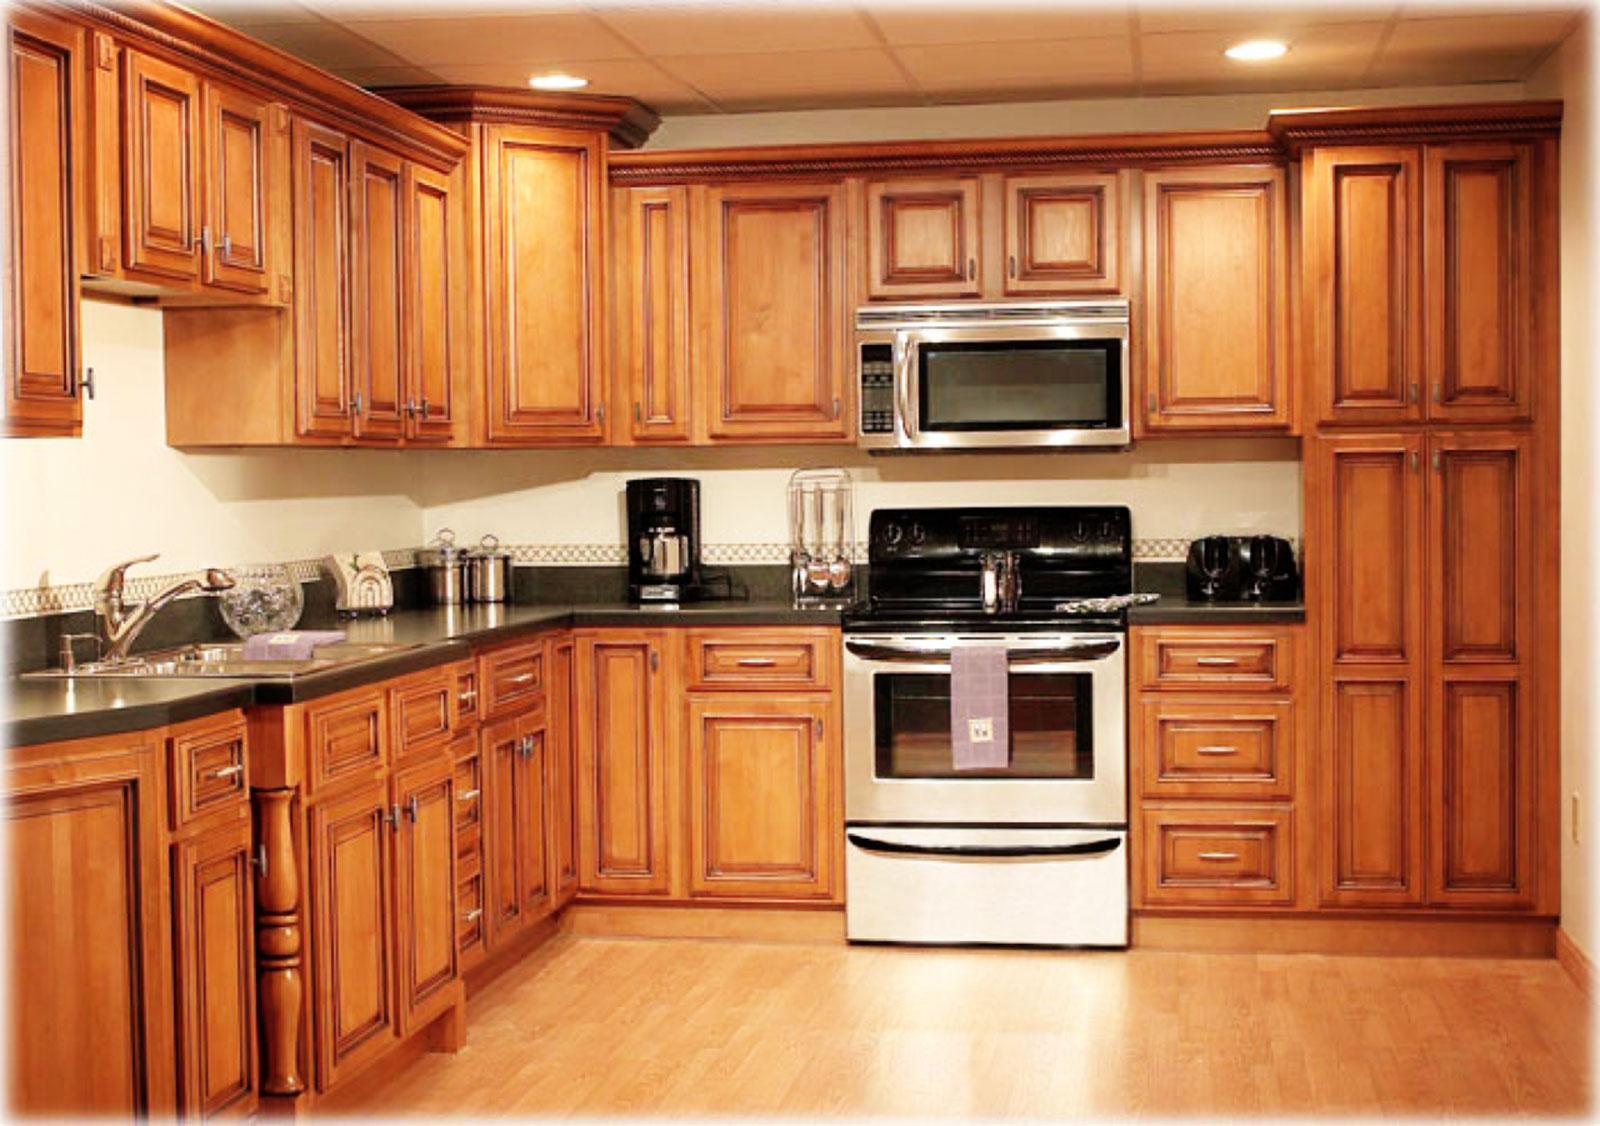 Ideas For Top Of Kitchen Cabinets Decorative Rustic Kitchen Cabinet Ideas Portraits Cute Homes